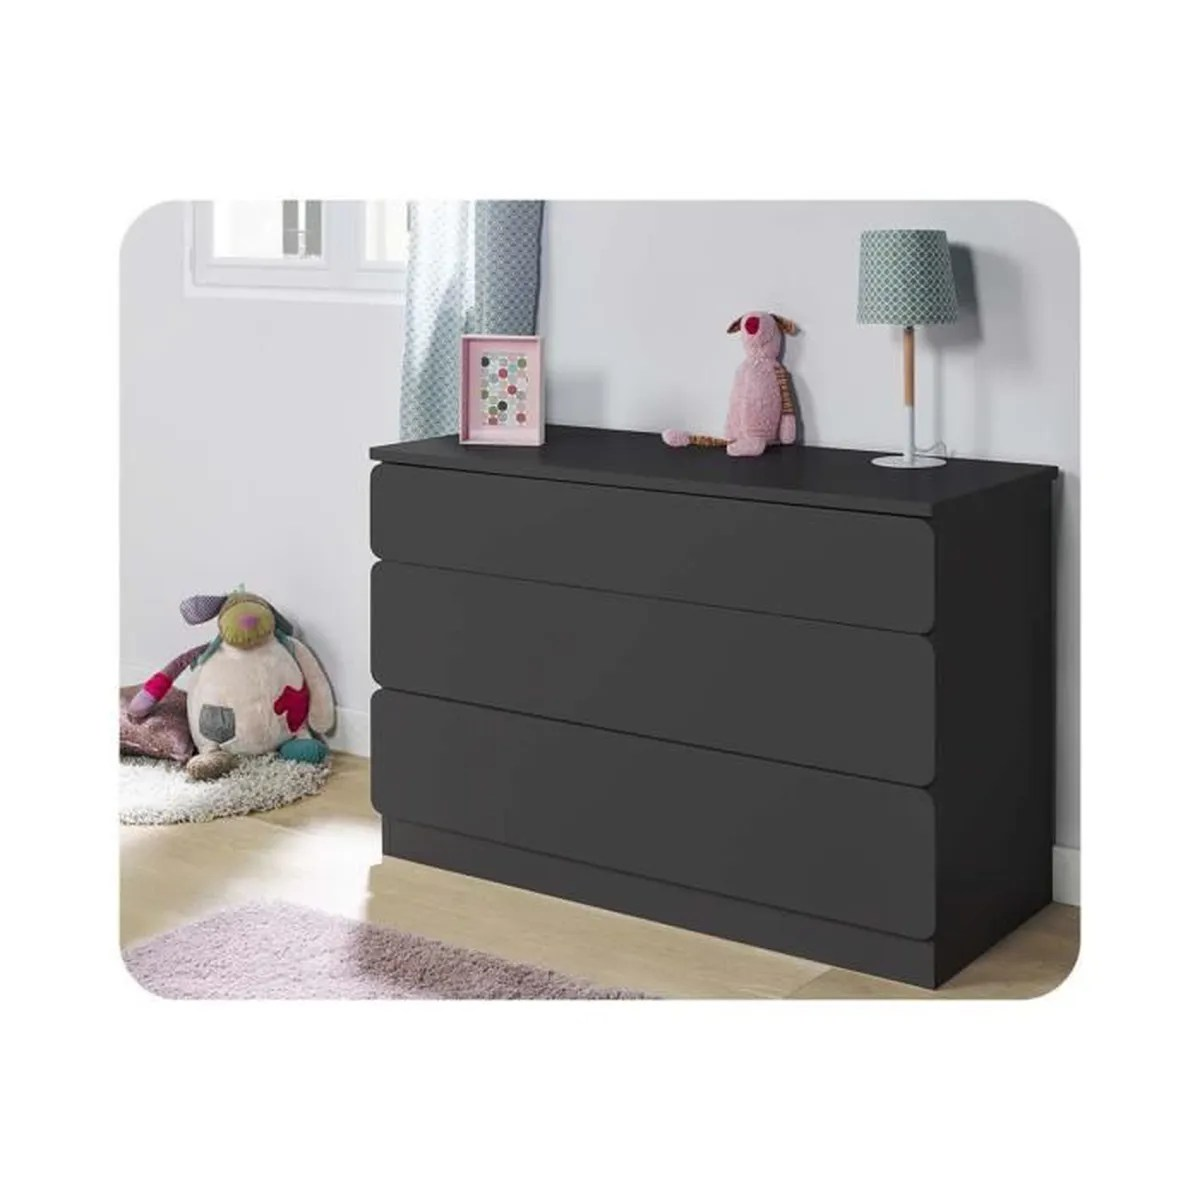 Commode Gris Anthracite Commode Enfant Twist Gris Anthracite Achat Vente Commode De